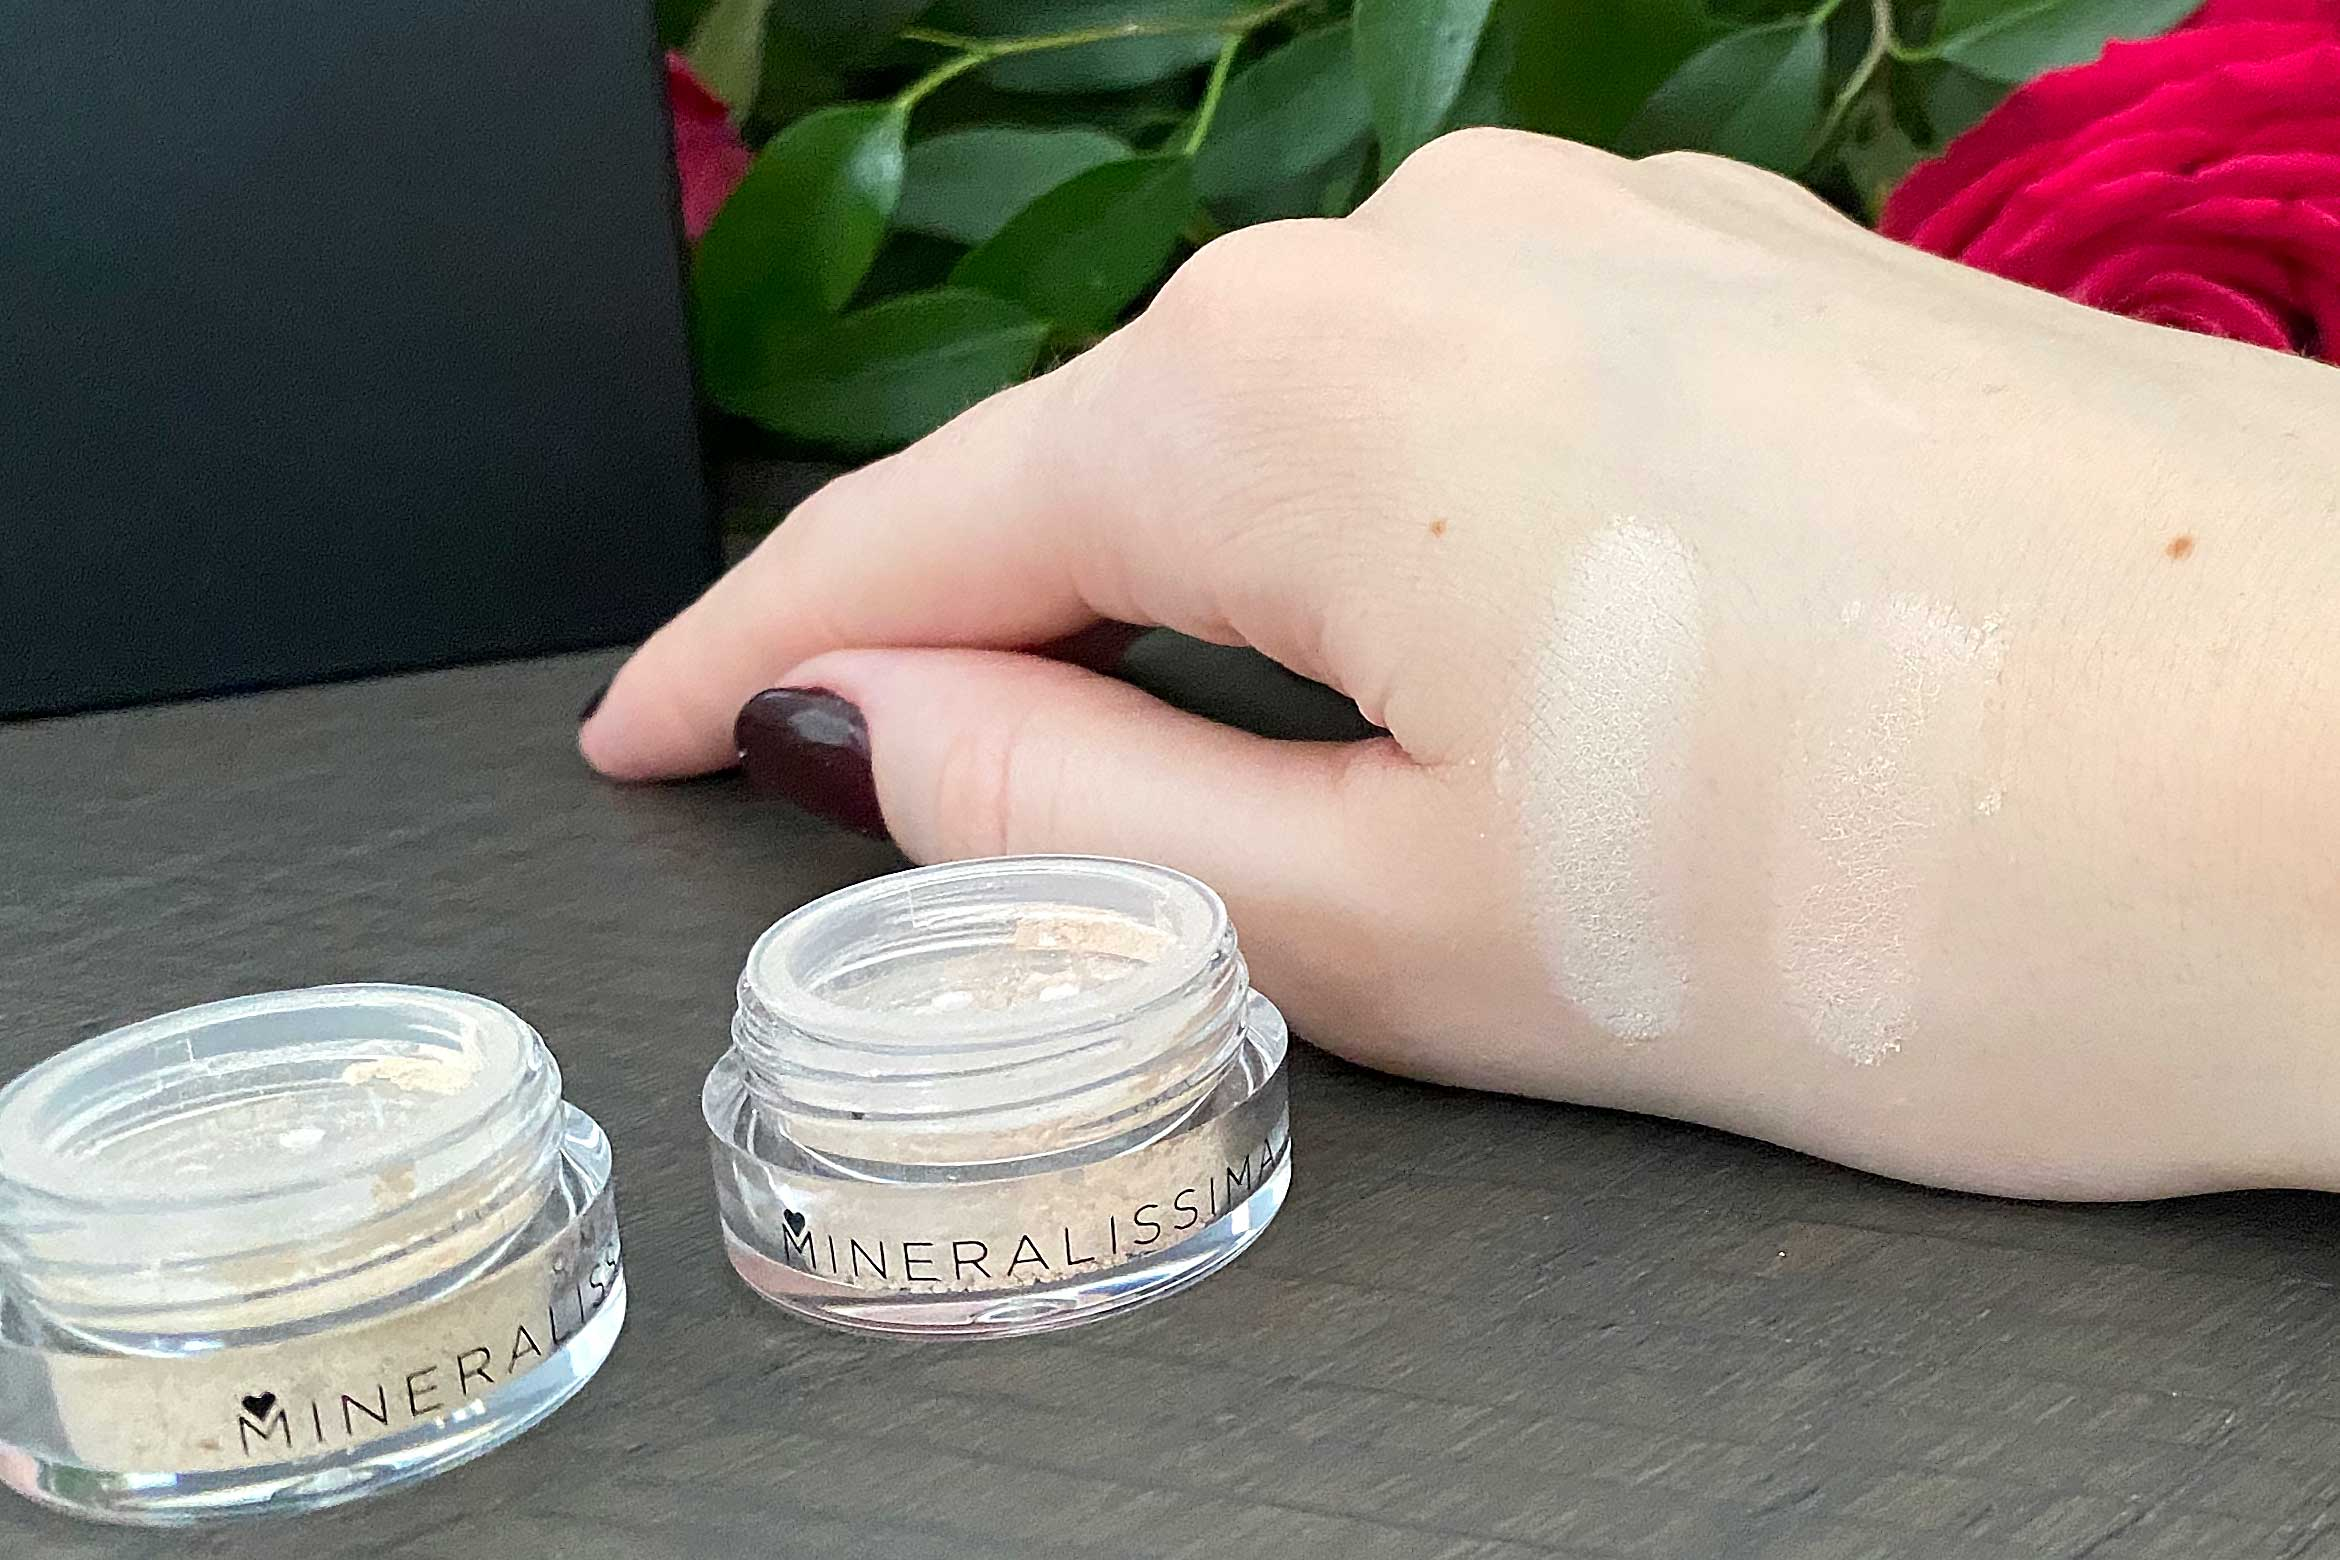 mineralissima minerale foundation swatch beech birch review